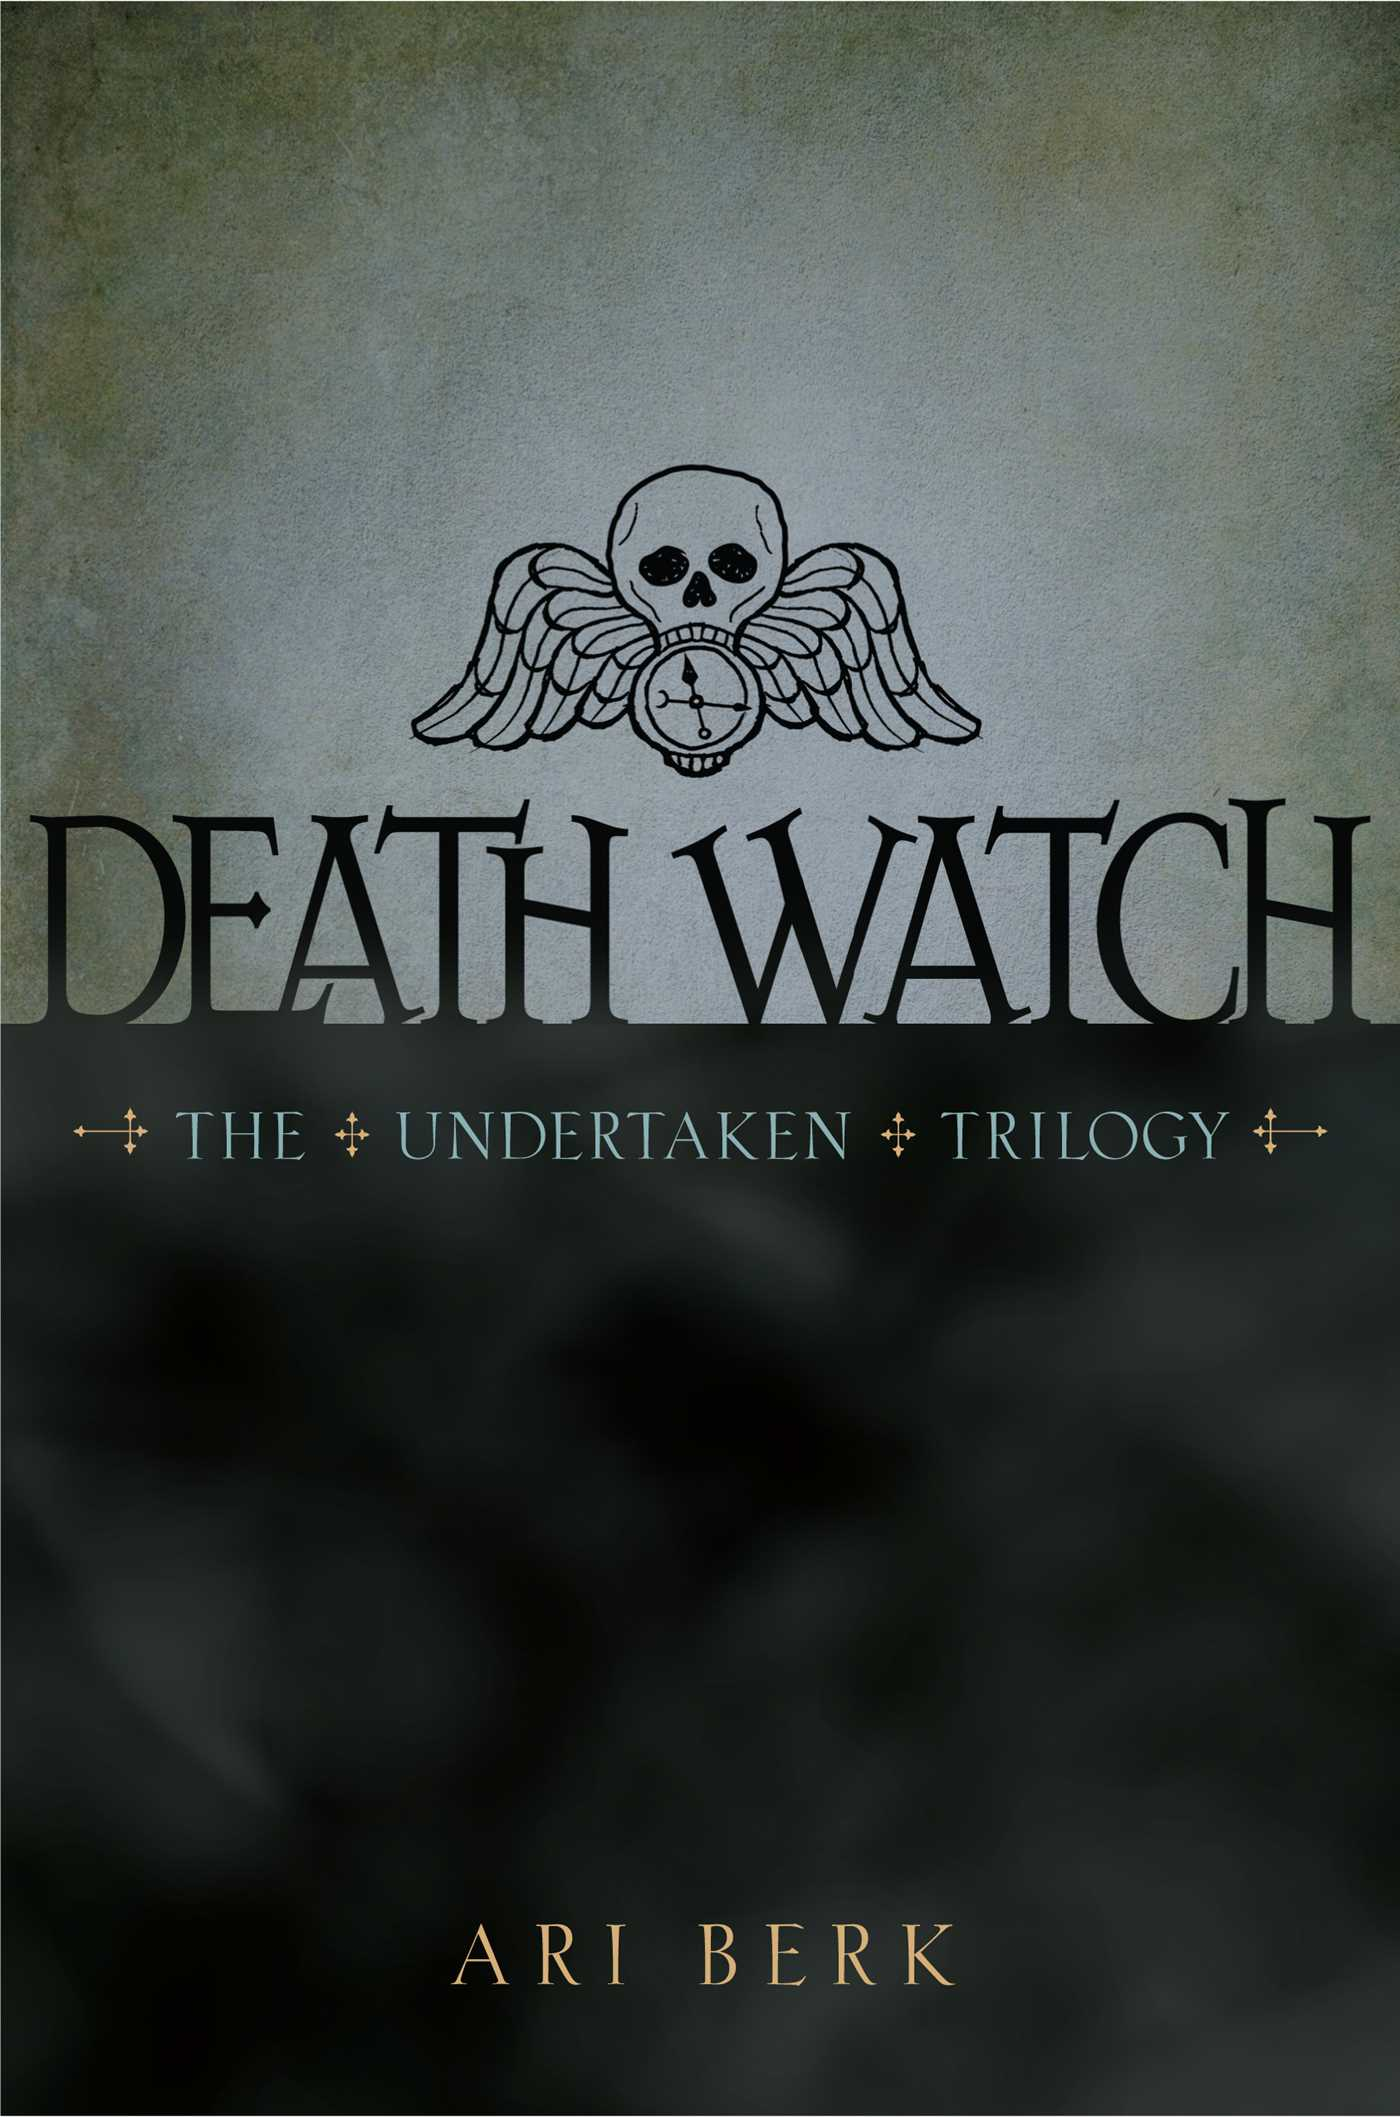 Death watch 9781442436039 hr